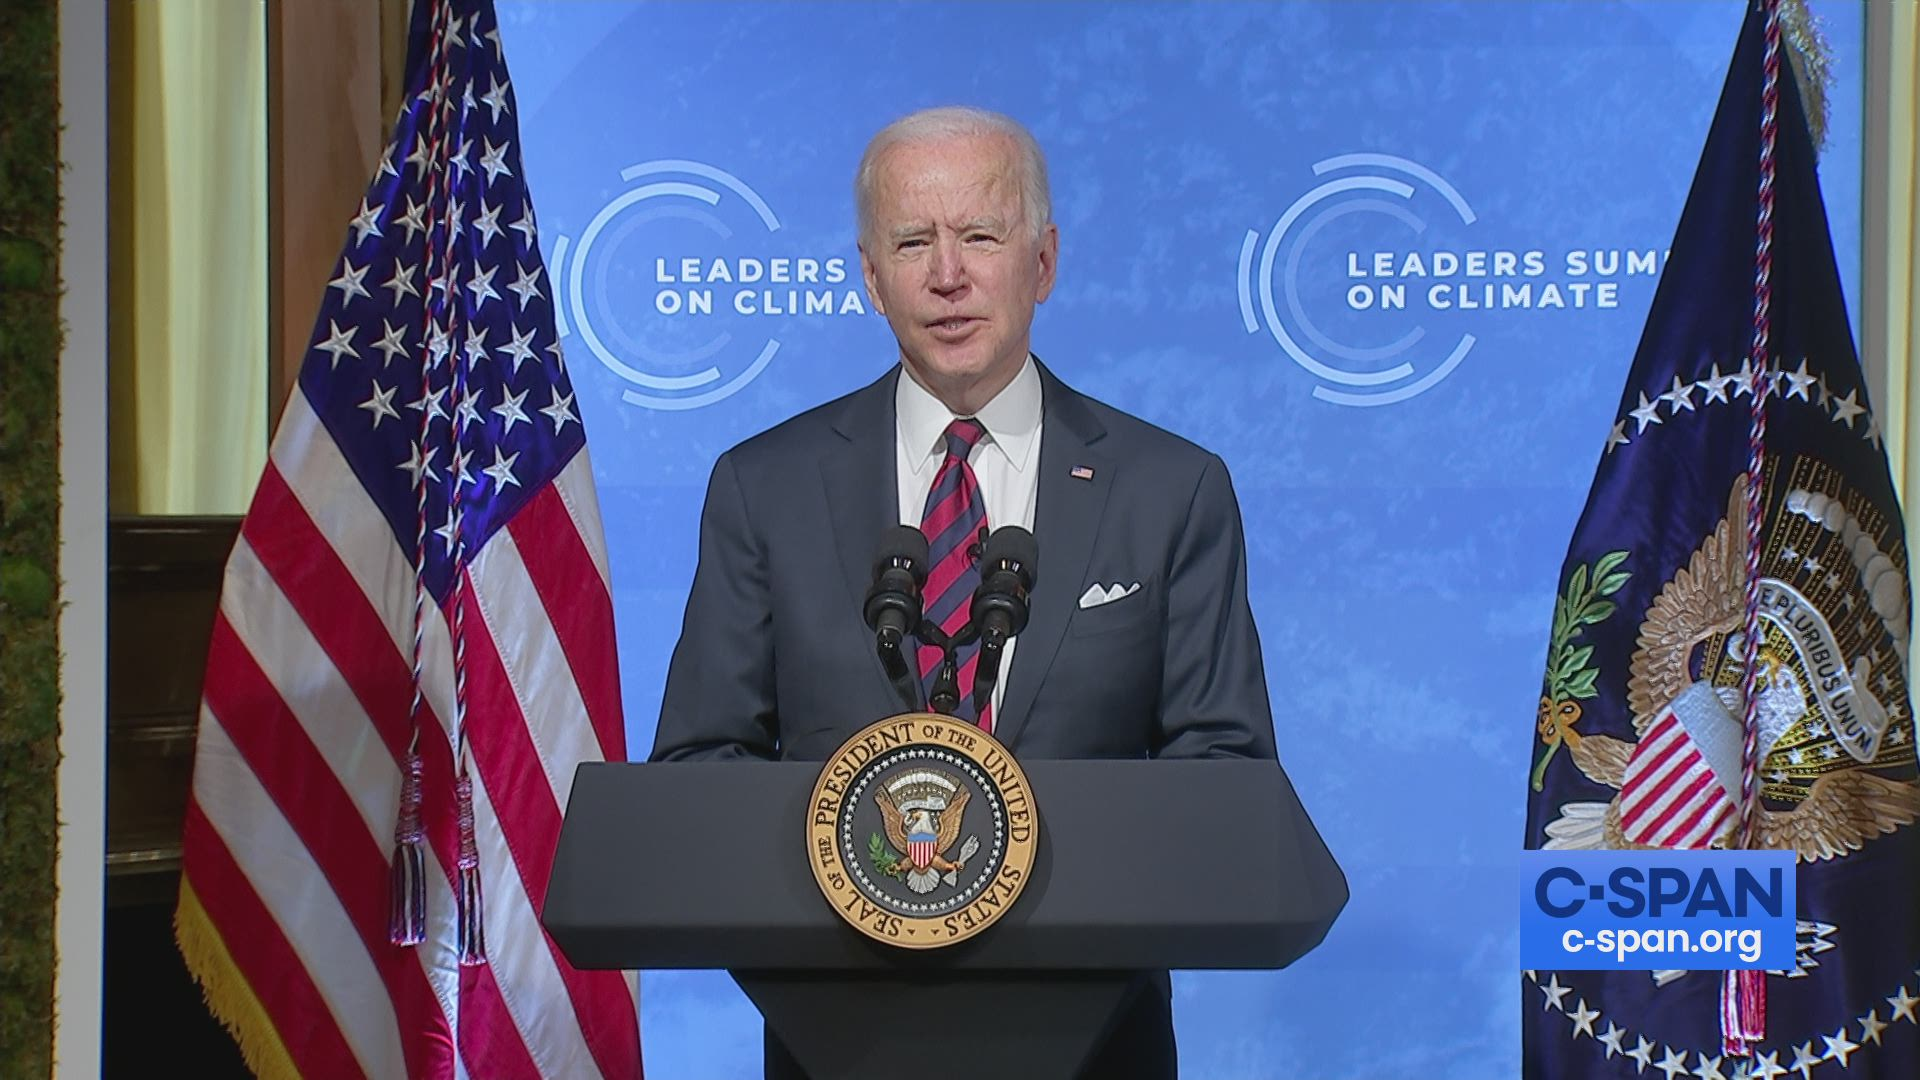 Amid Climate Crisis, Biden Stacks Administration With Fossil Fuel Industry Allies